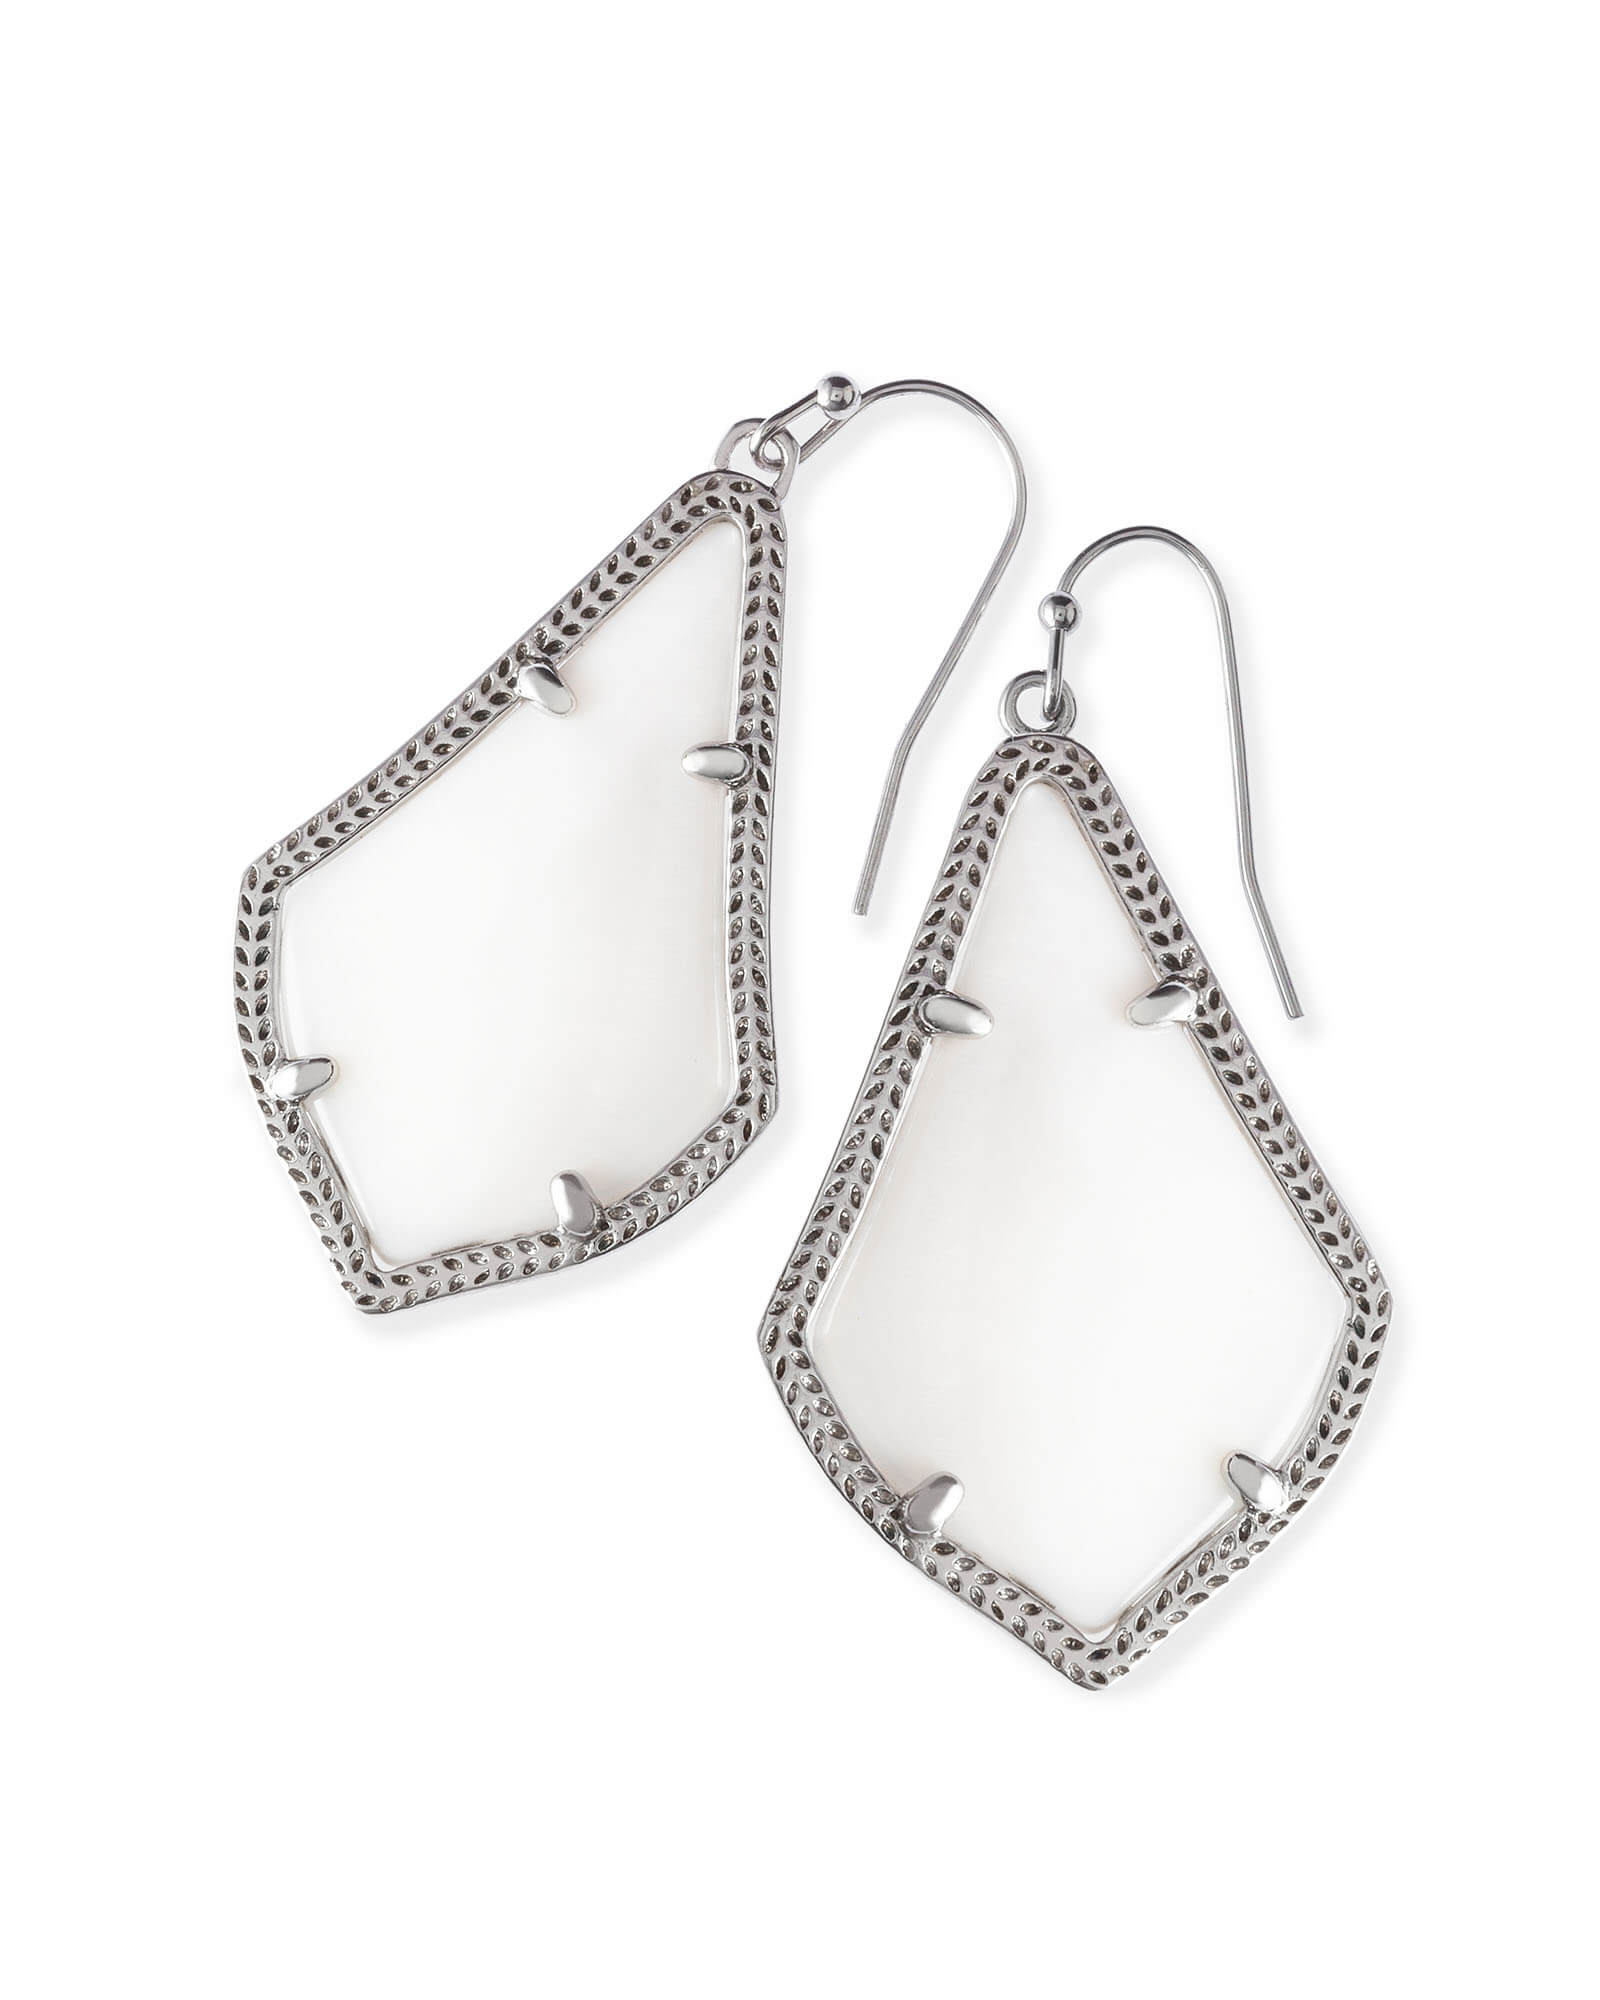 Alex Silver Drop Earrings in White Pearl